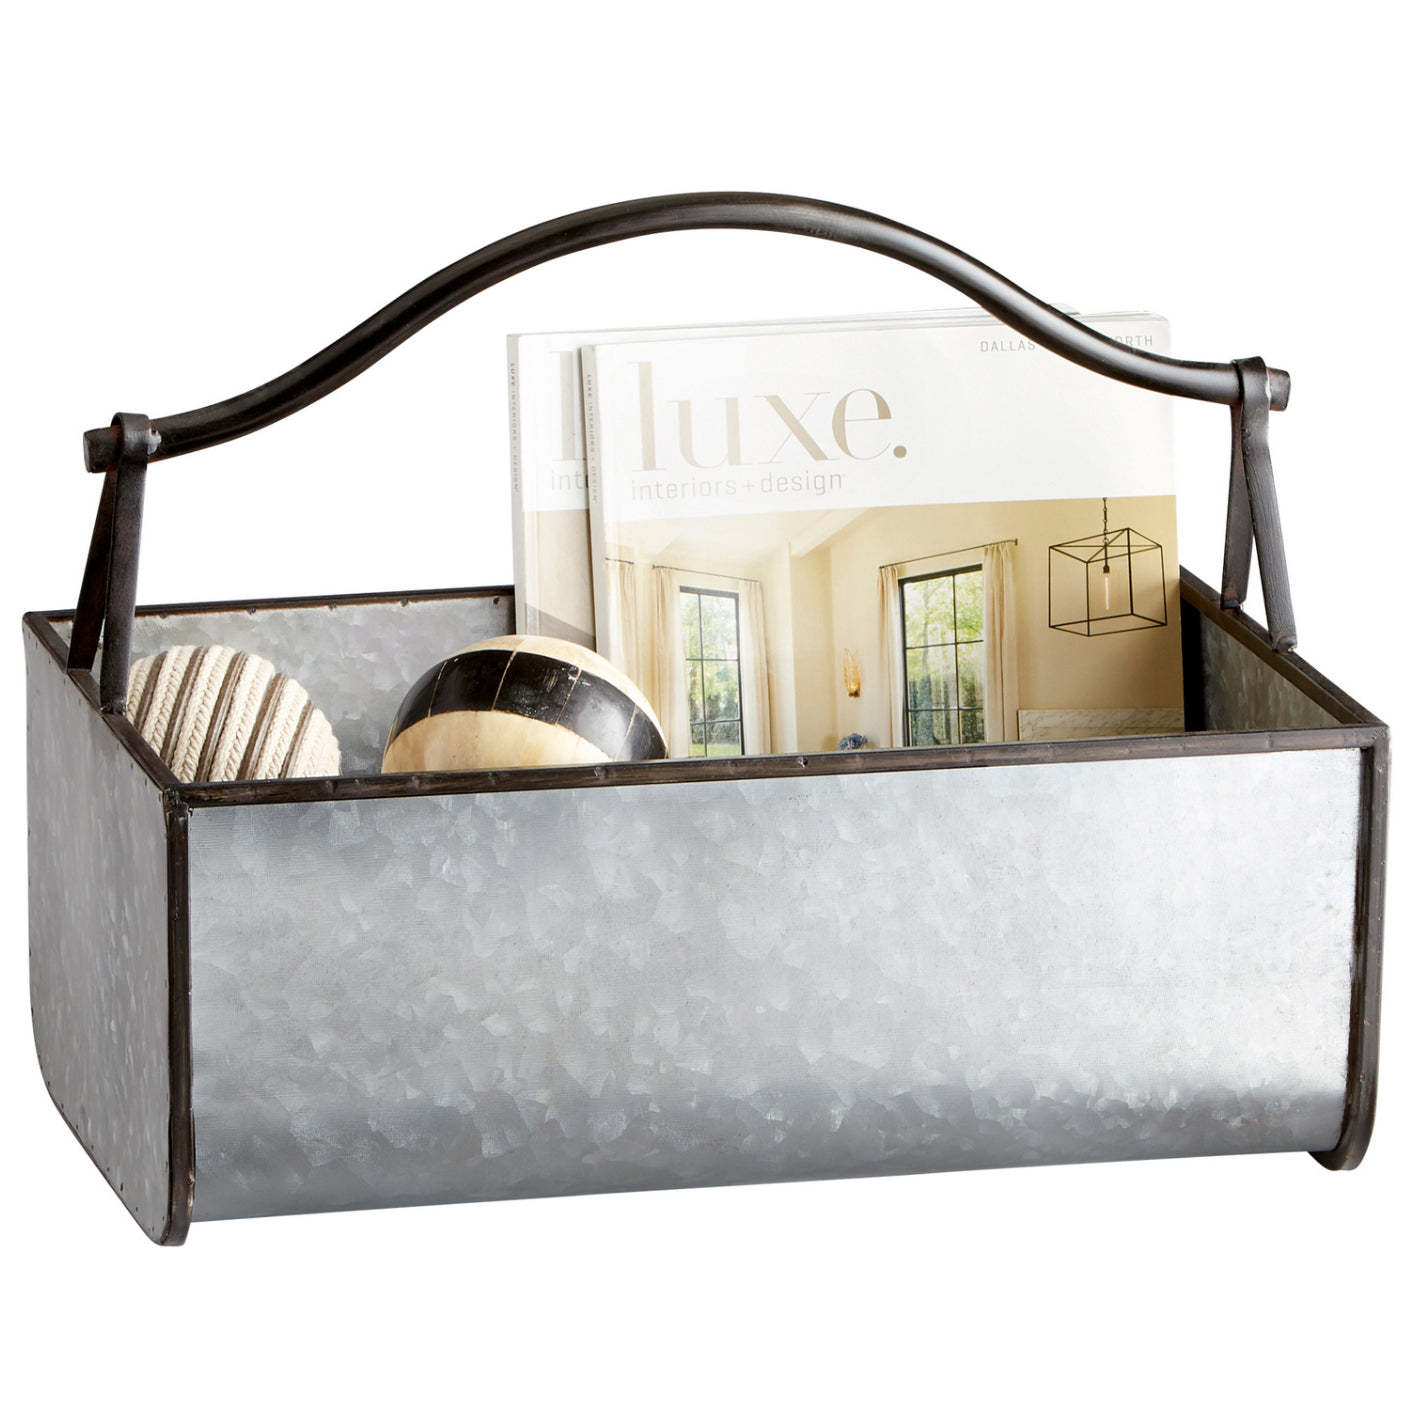 L01655 - Rustic Storage Basket